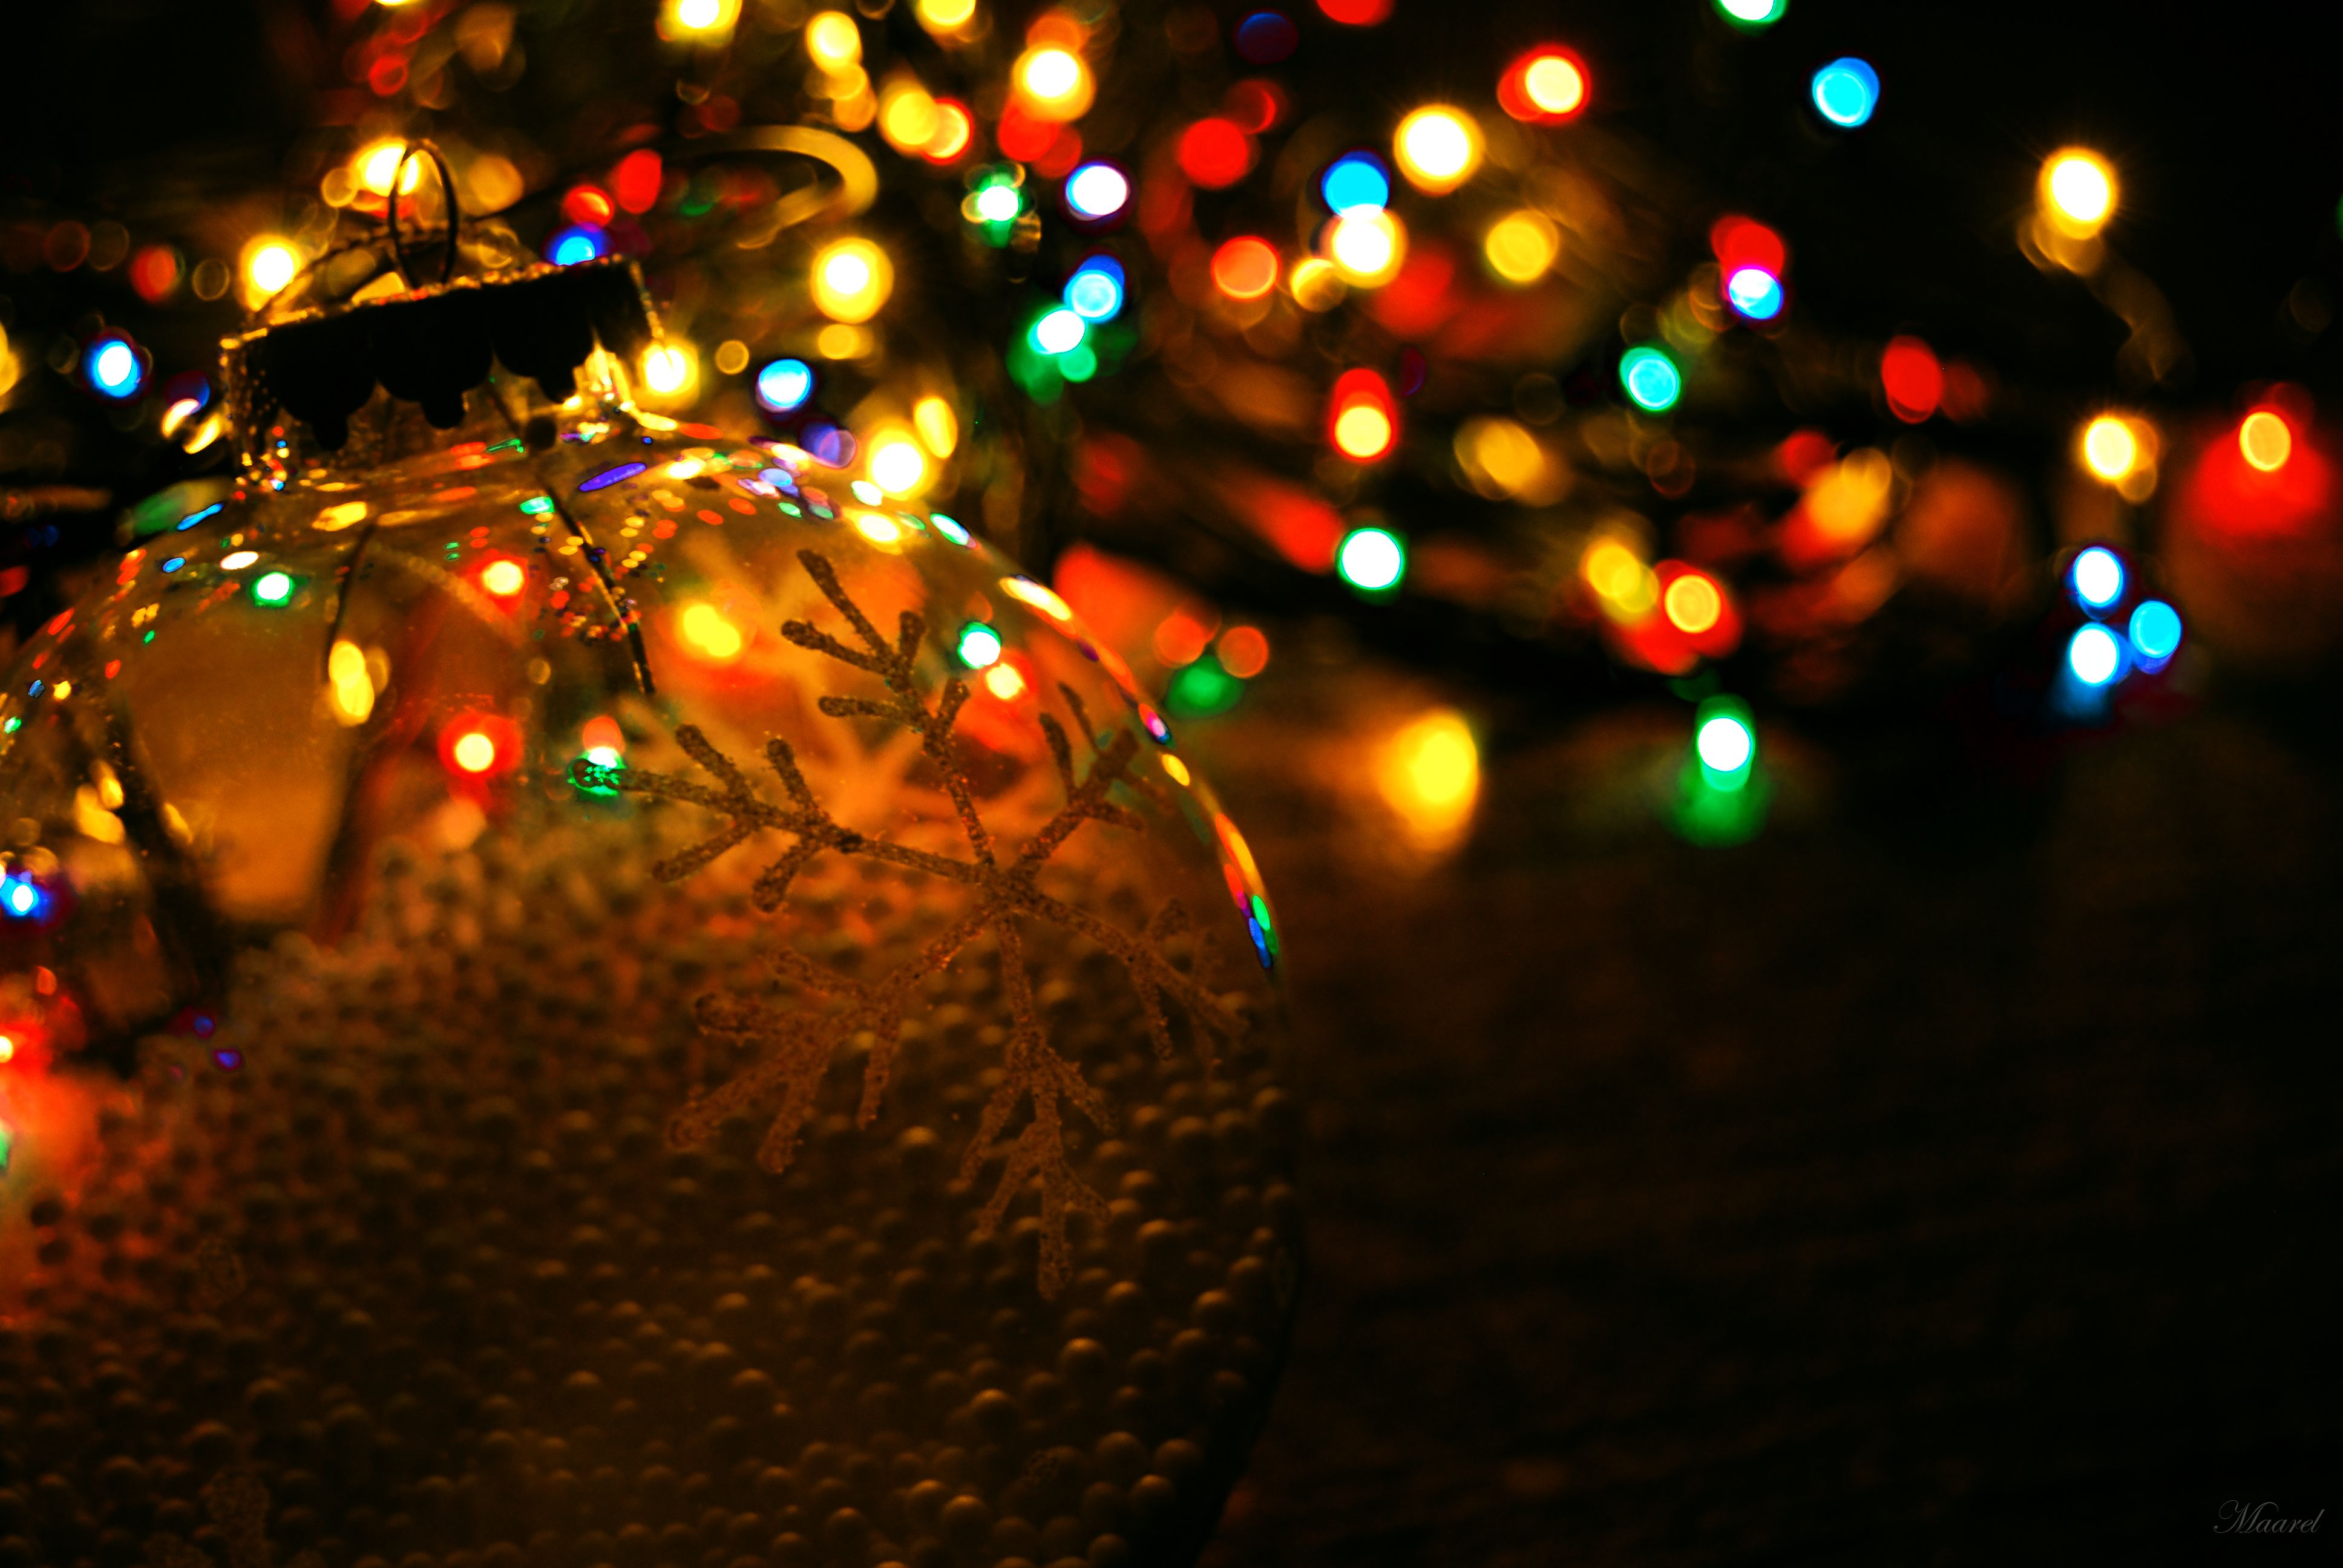 Christmas Wallpapers for iPhones